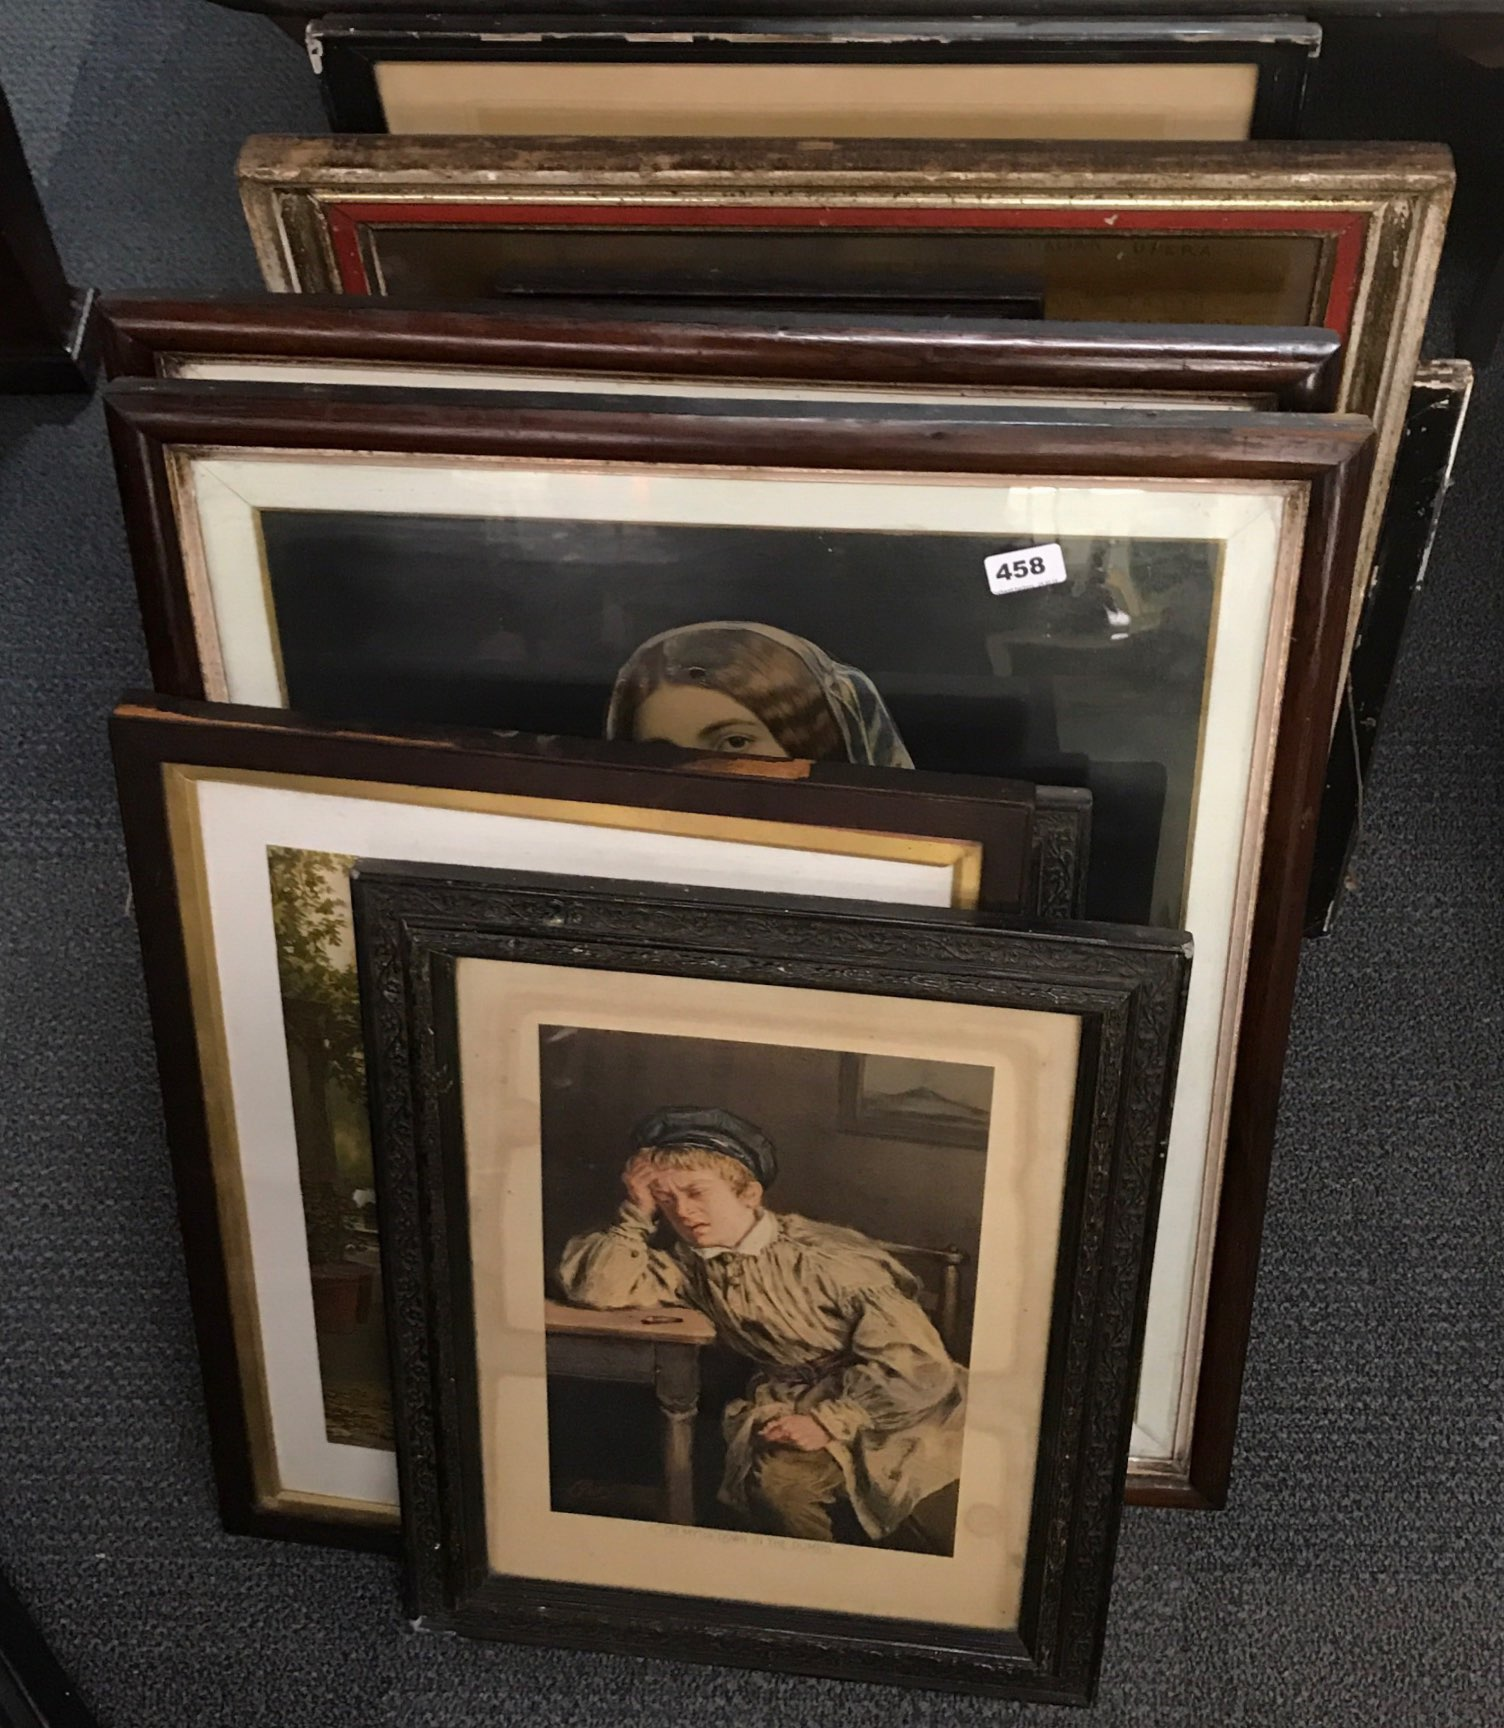 Lot 458 - A quantity of Victorian framed prints, largest framed size 61 x 75cm.